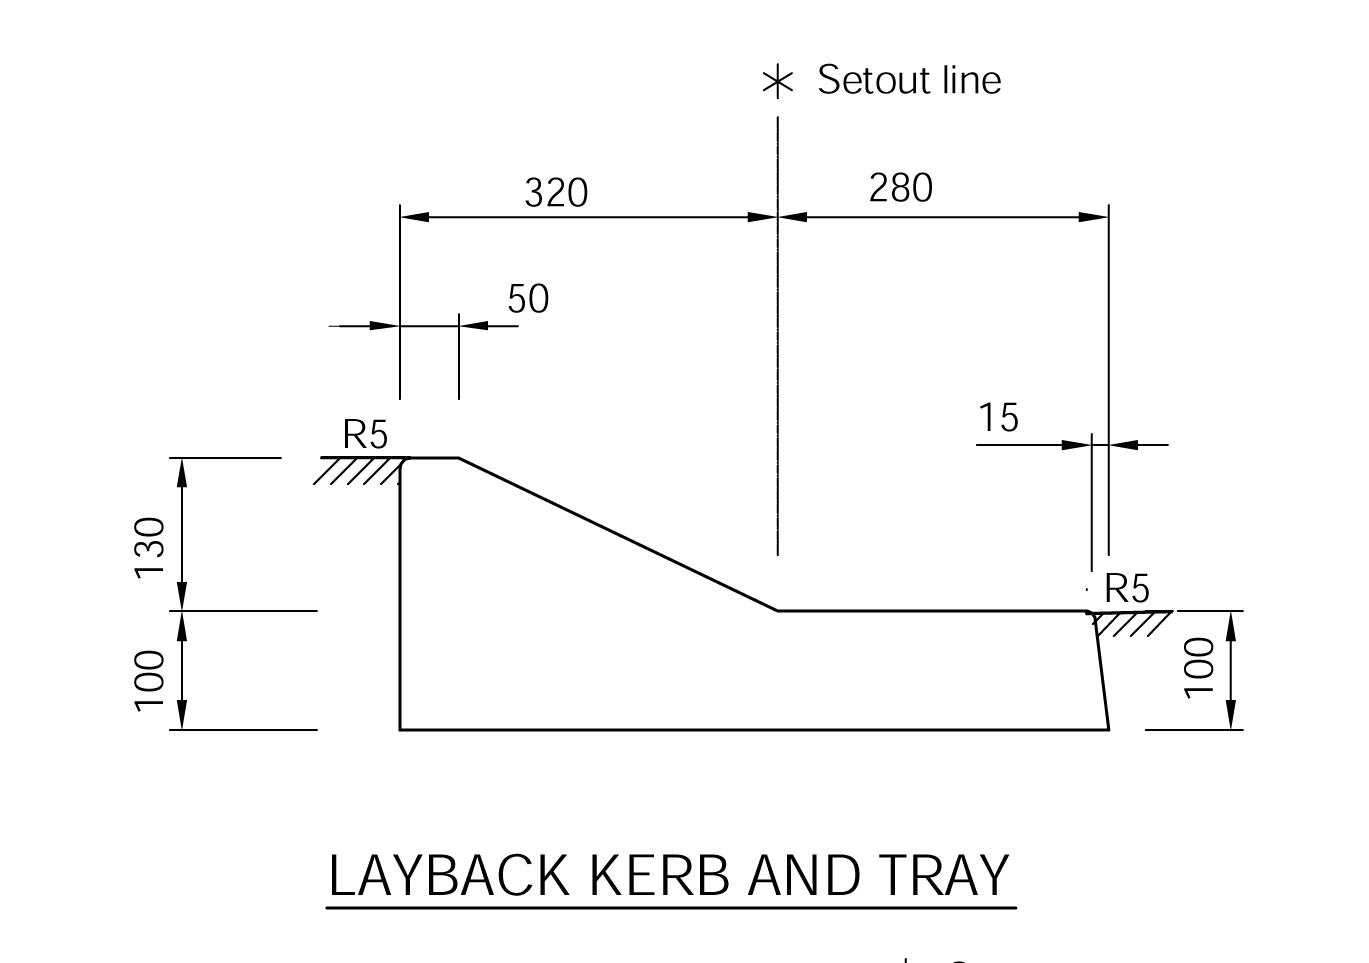 Layback Kerb and Tray